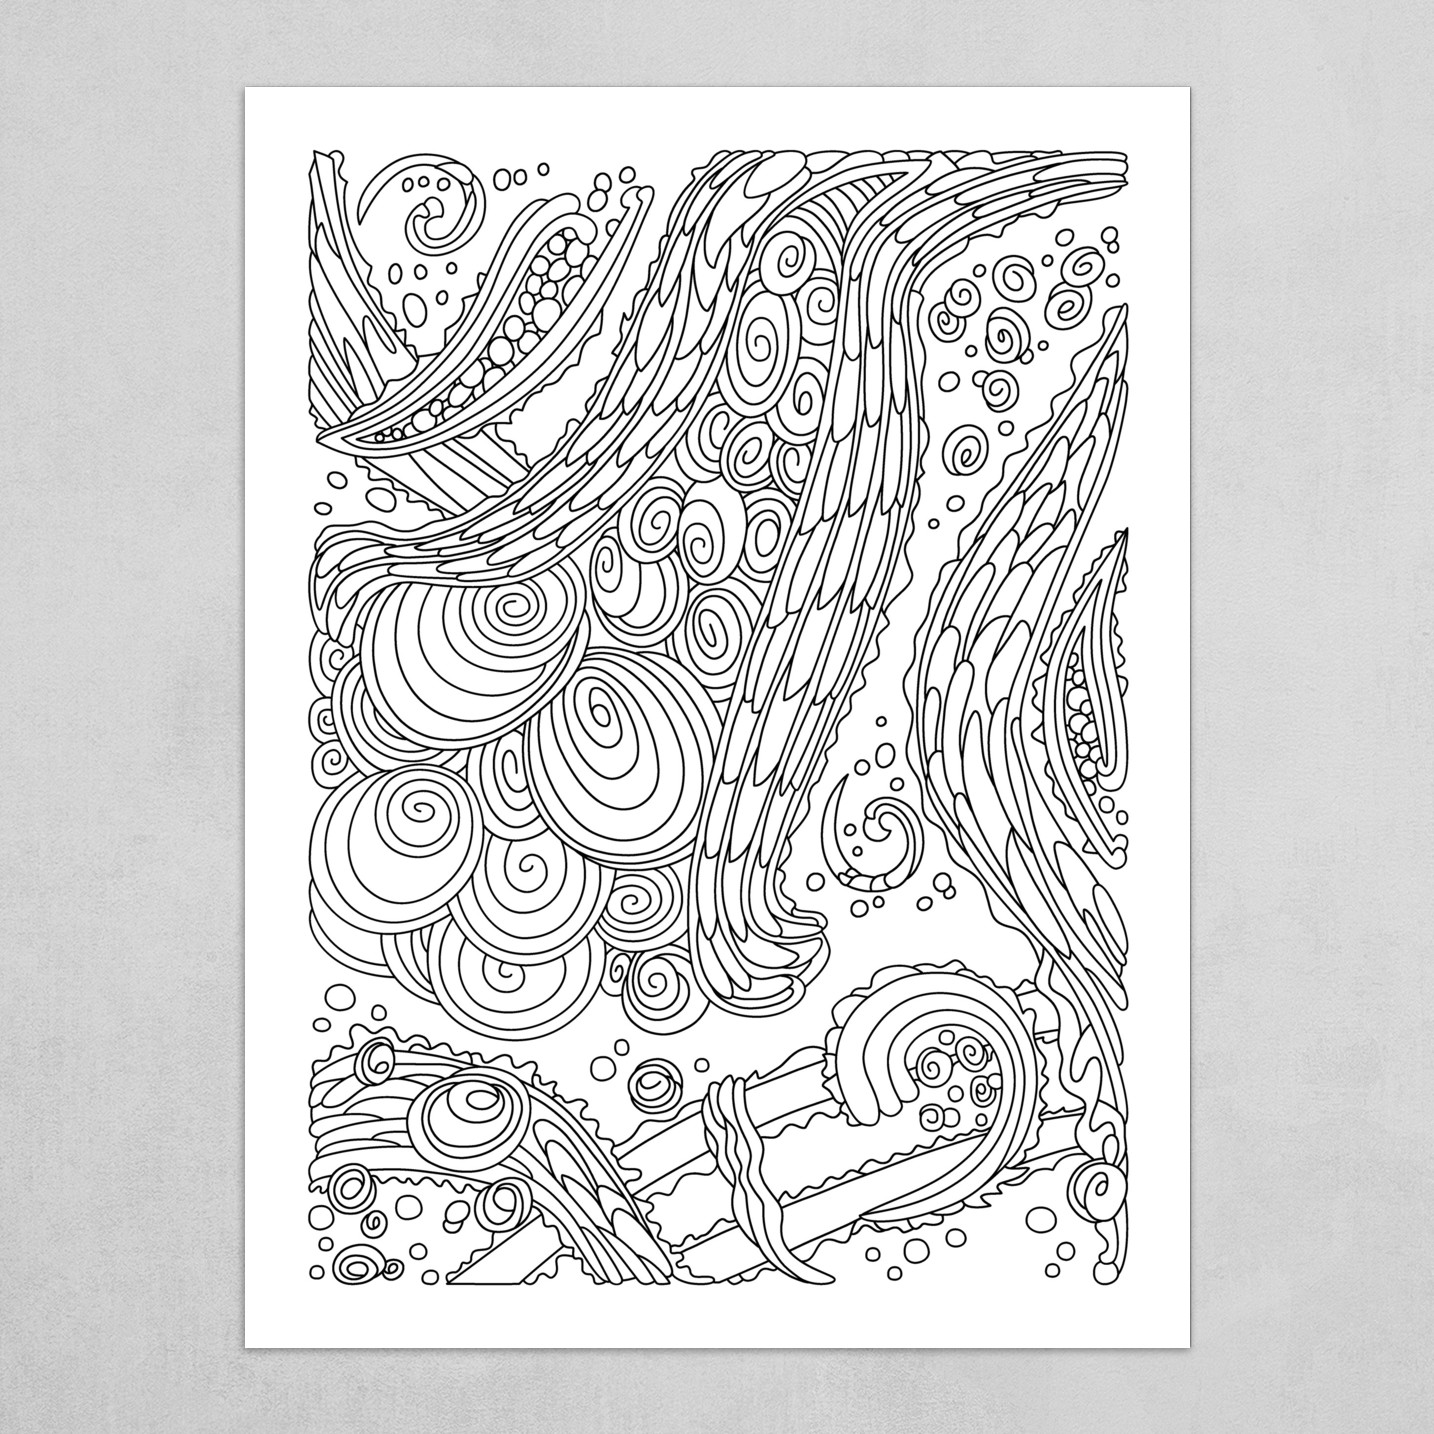 Wandering Abstract Line Art 38: Black & White